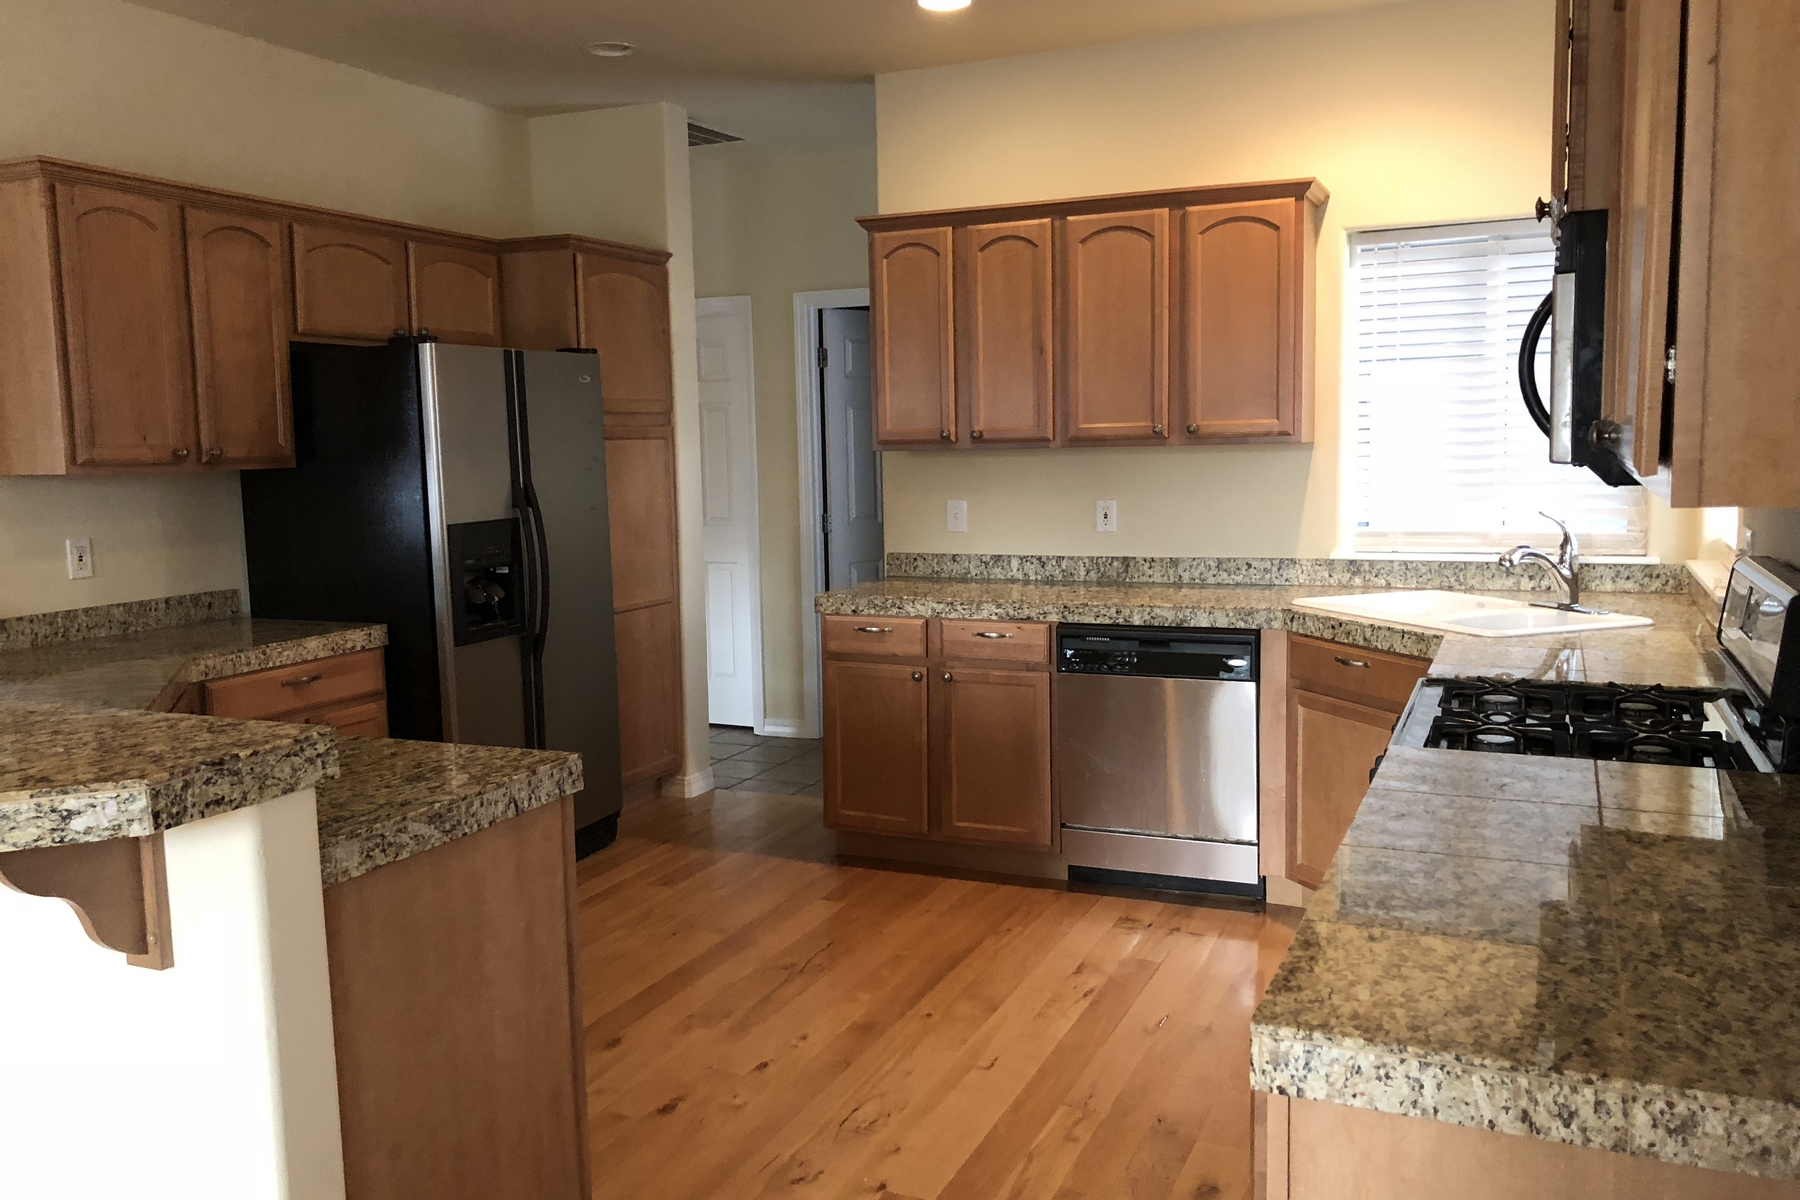 Additional photo for property listing at Immaculate and Affordable 520 N 3rd St Bellevue, Idaho 83313 United States